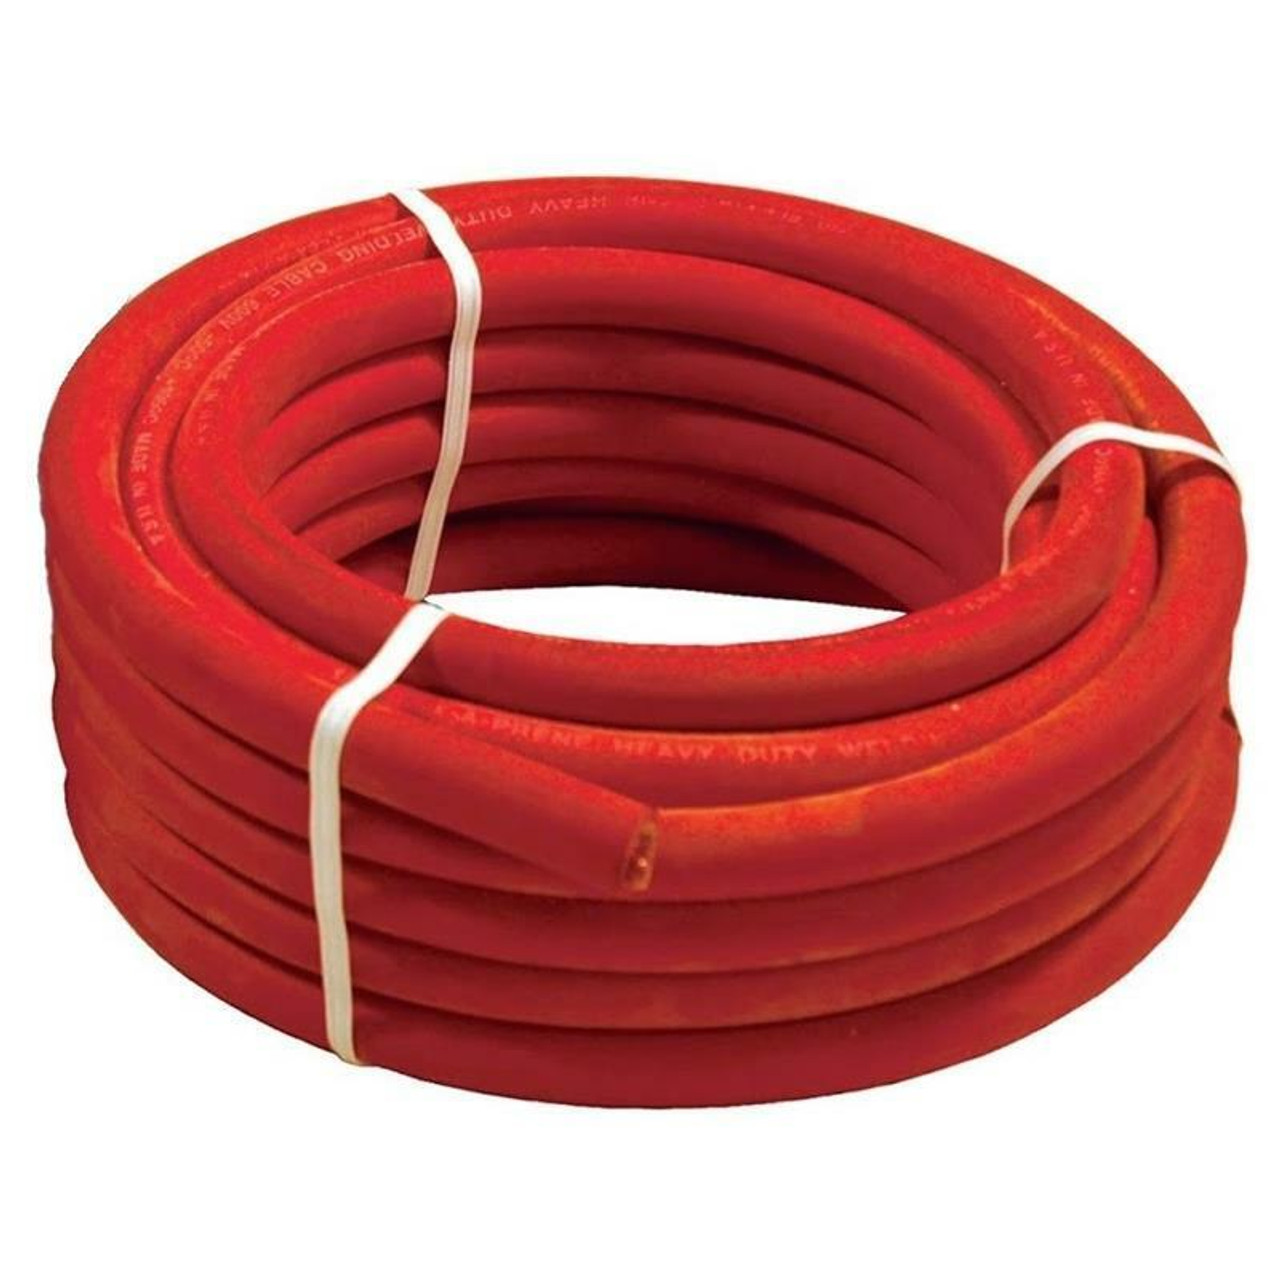 100 Foot of Red 2/0 Flex-A-Prene Welding and Battery Cable Made In USA